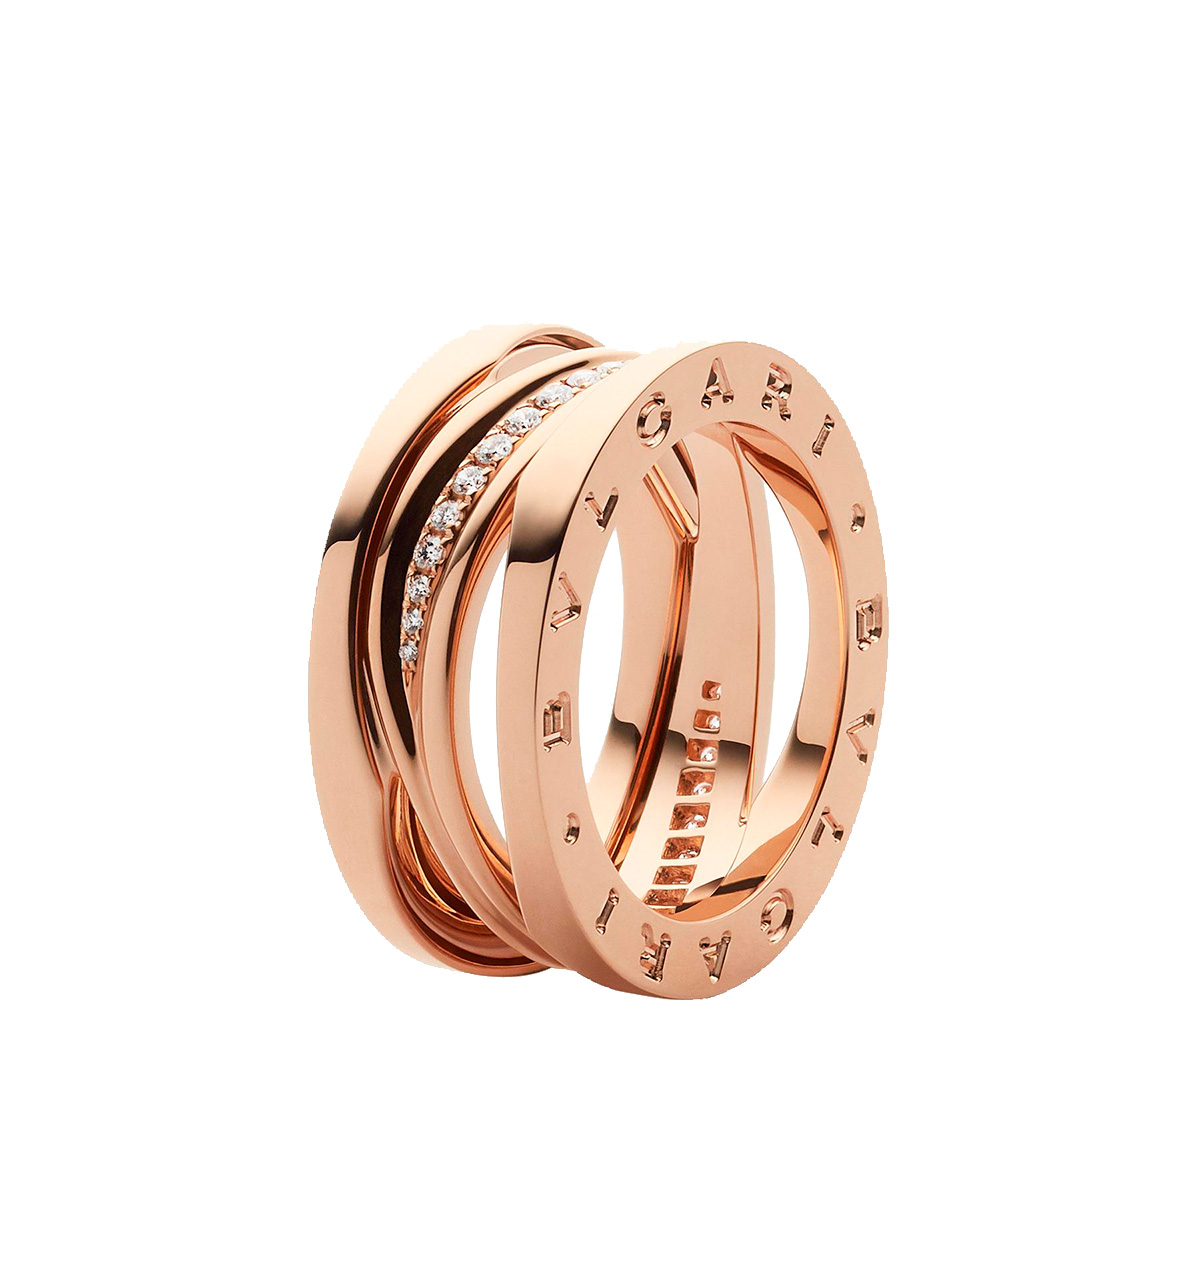 a18d7749c2f8 Anillo B.Zero1 Bulgari Design Legend oro rosa y diamantes